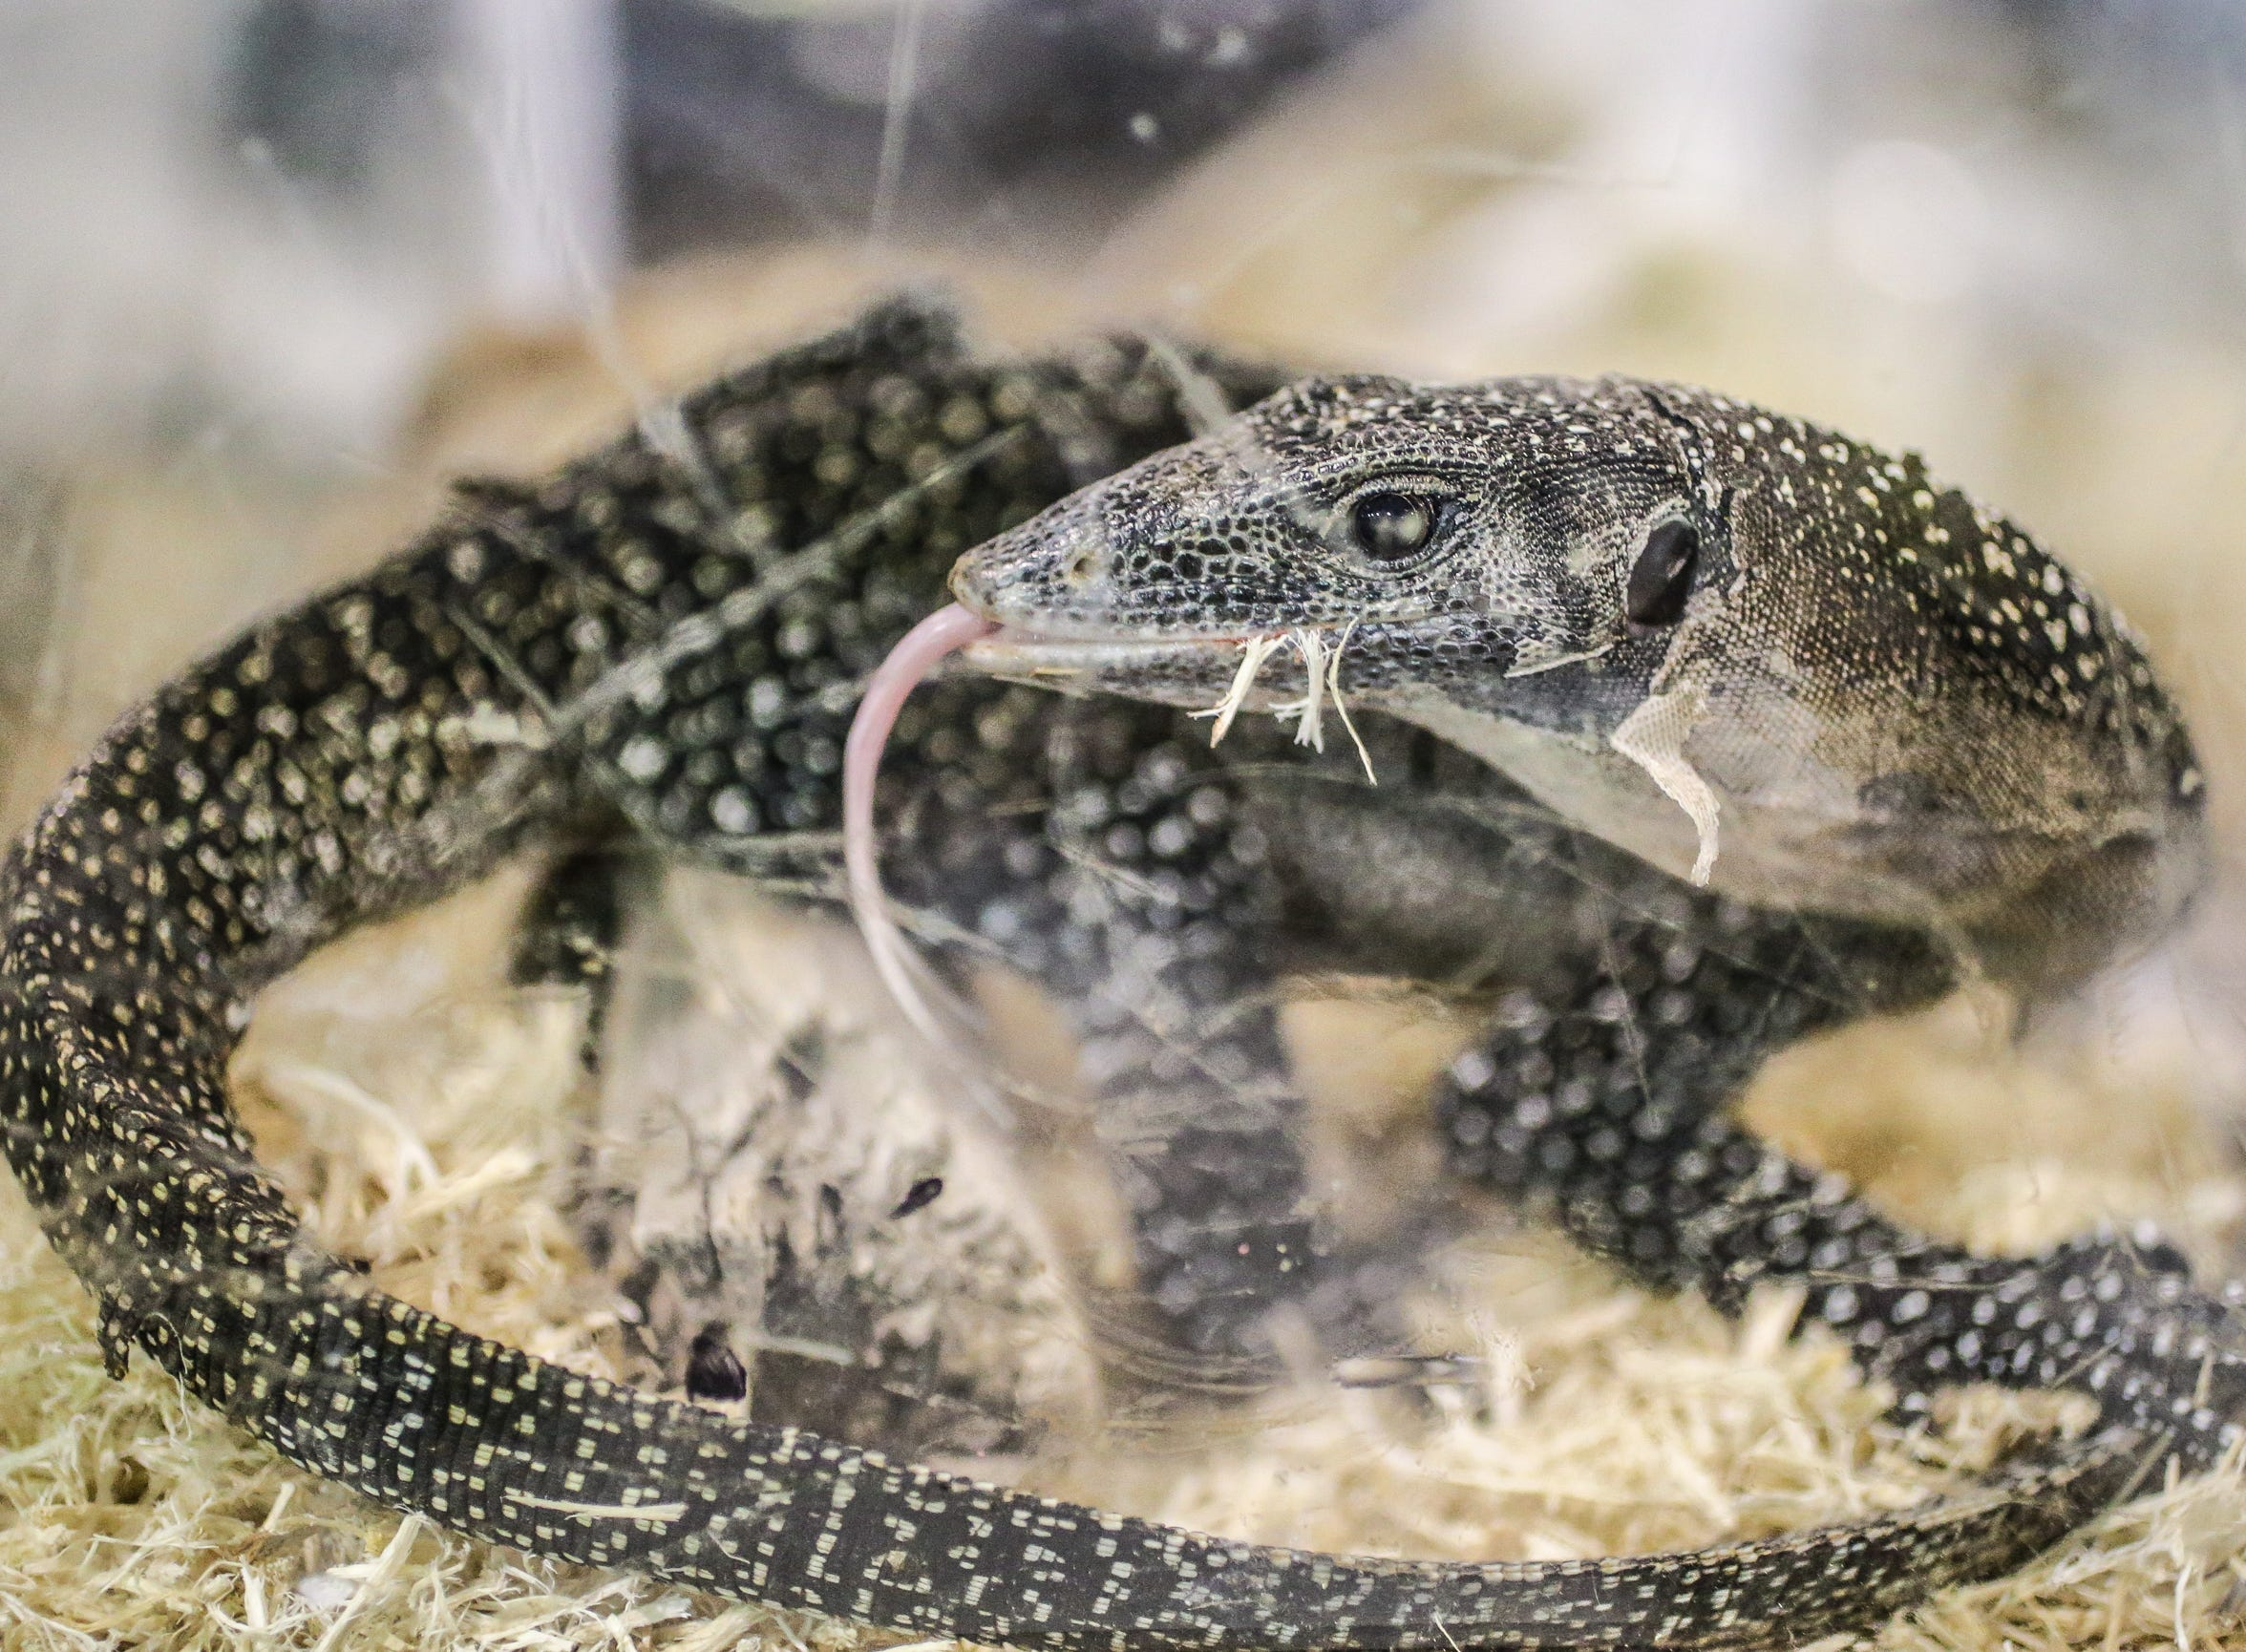 A monitor lizard flicks it's tongue from the Grove City Reptiles booth during the Midwest Reptile Show held at the Indiana State Fairgrounds on Sunday, Jan. 14, 2018.